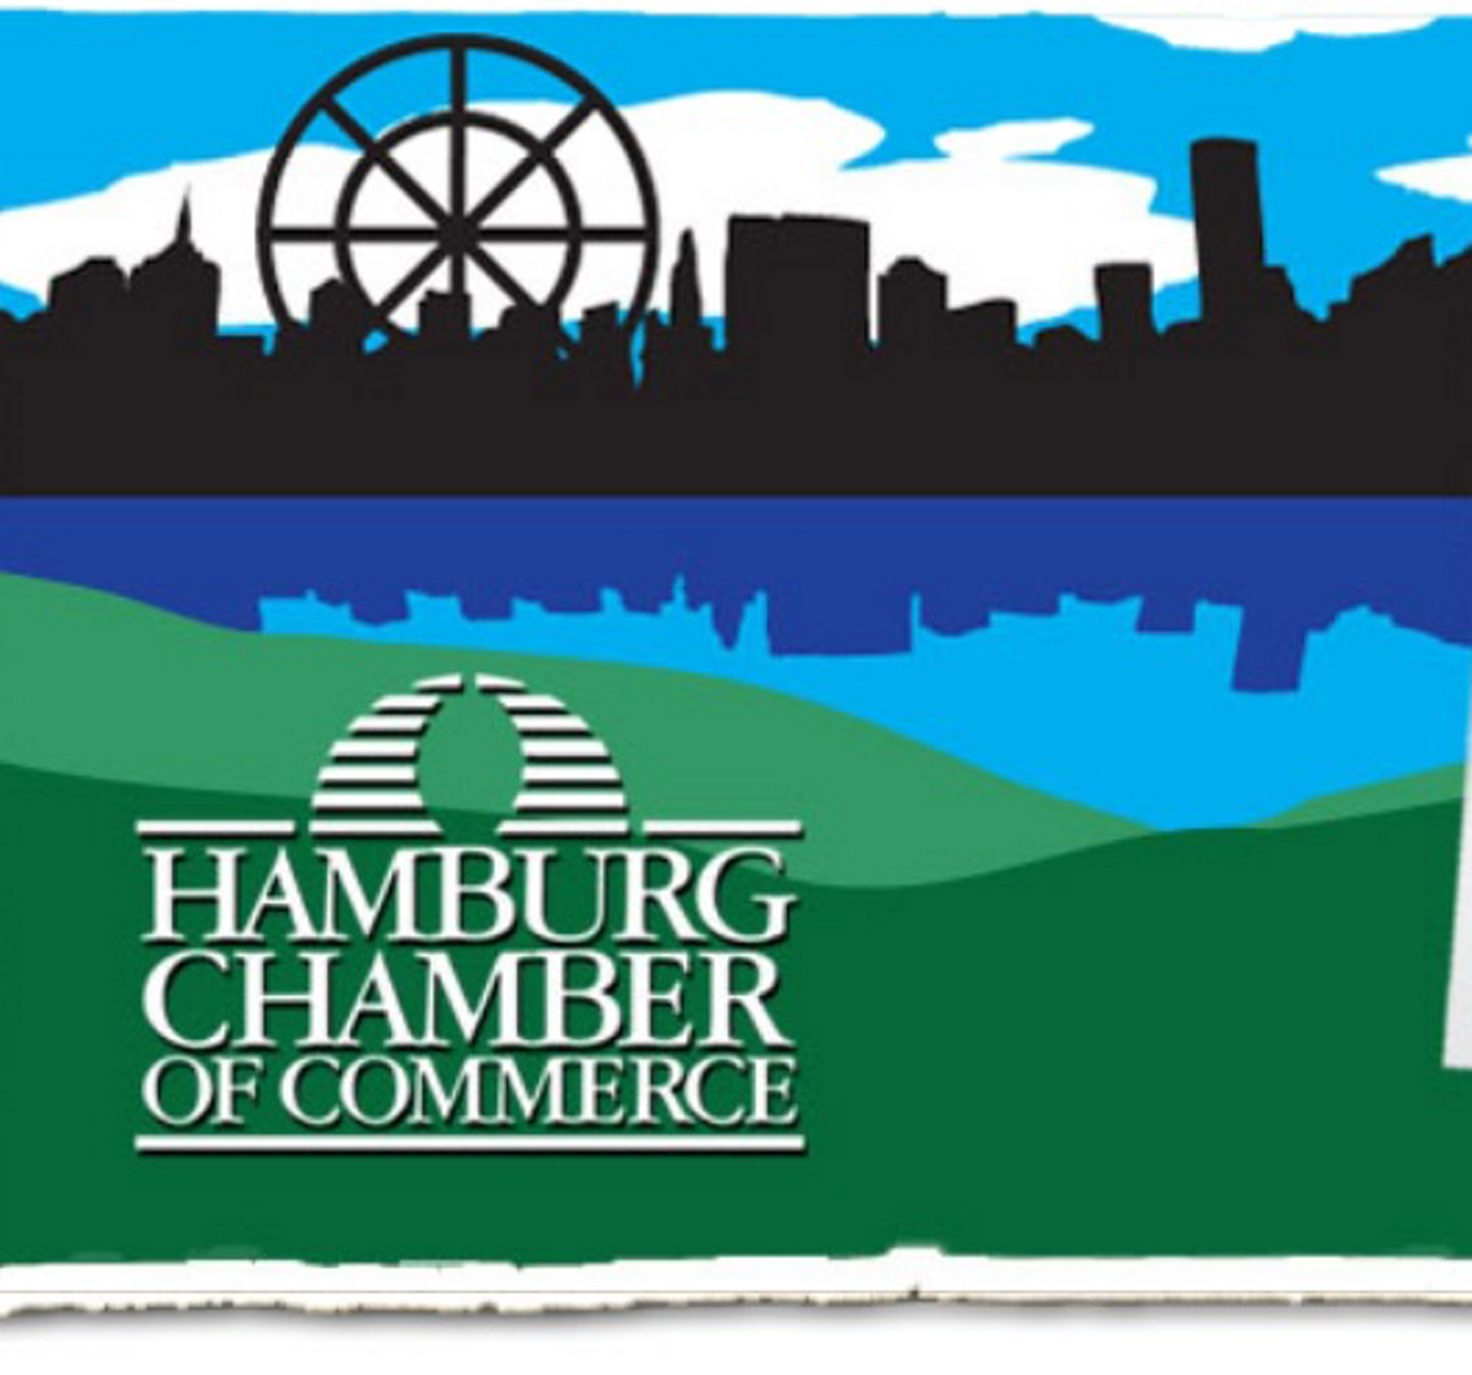 The Hamburg Chamber of Commerce wants to change its logo